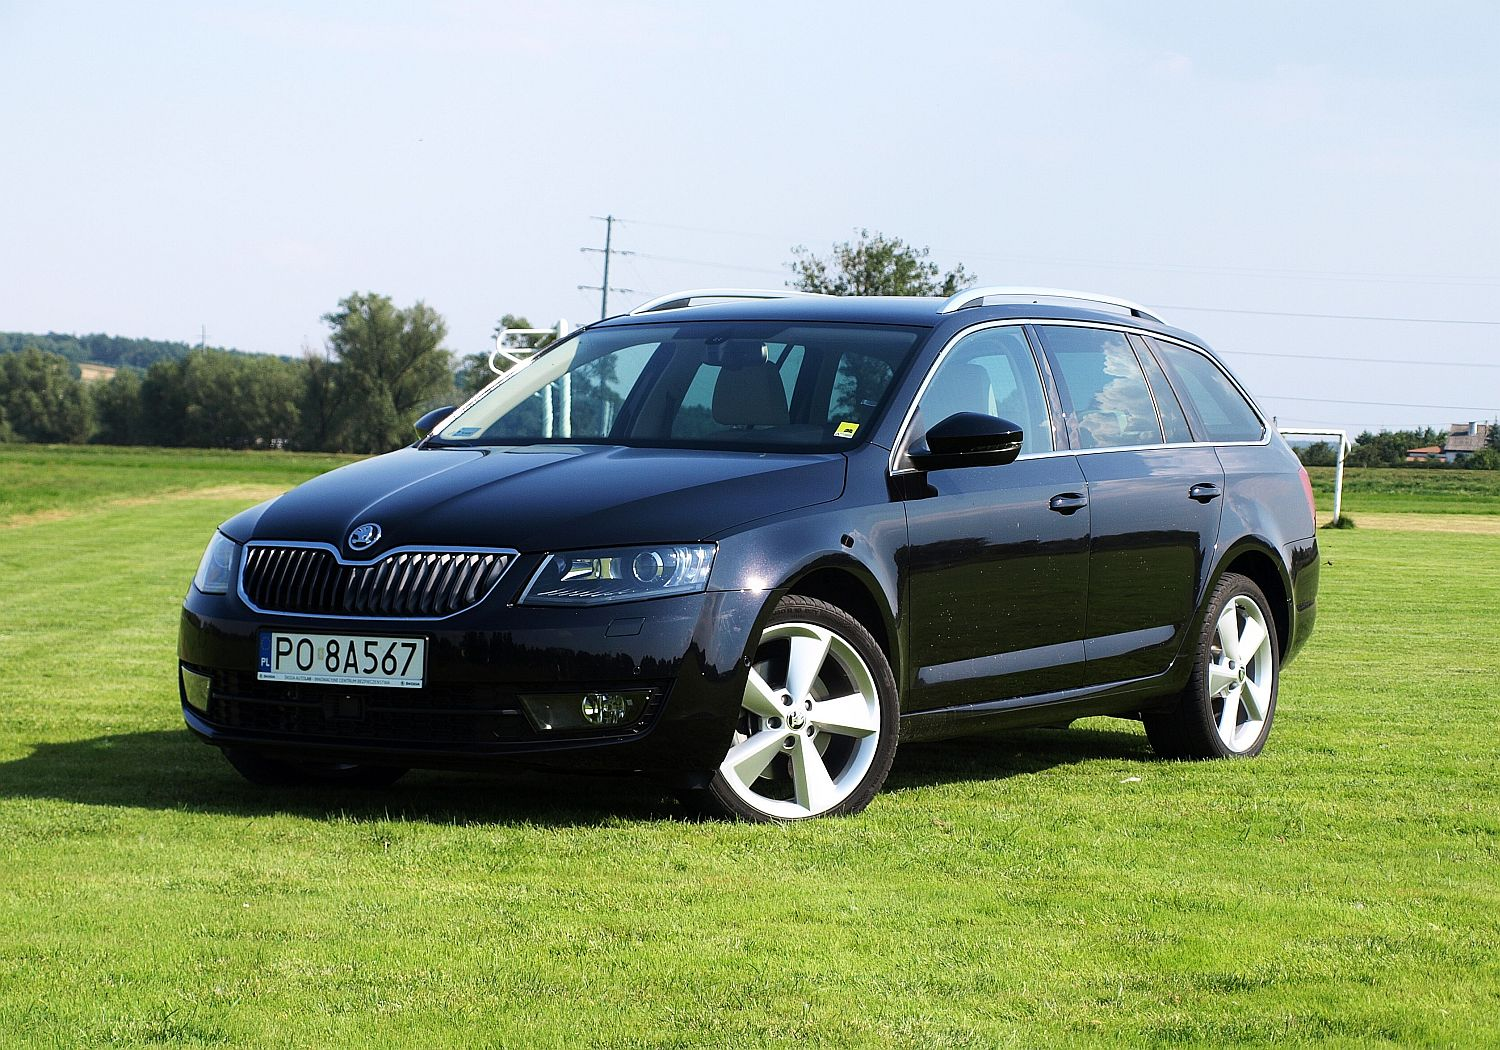 skoda octavia combi 1 8 tsi dsg 4x4 elegance simply clever das auto namasce. Black Bedroom Furniture Sets. Home Design Ideas